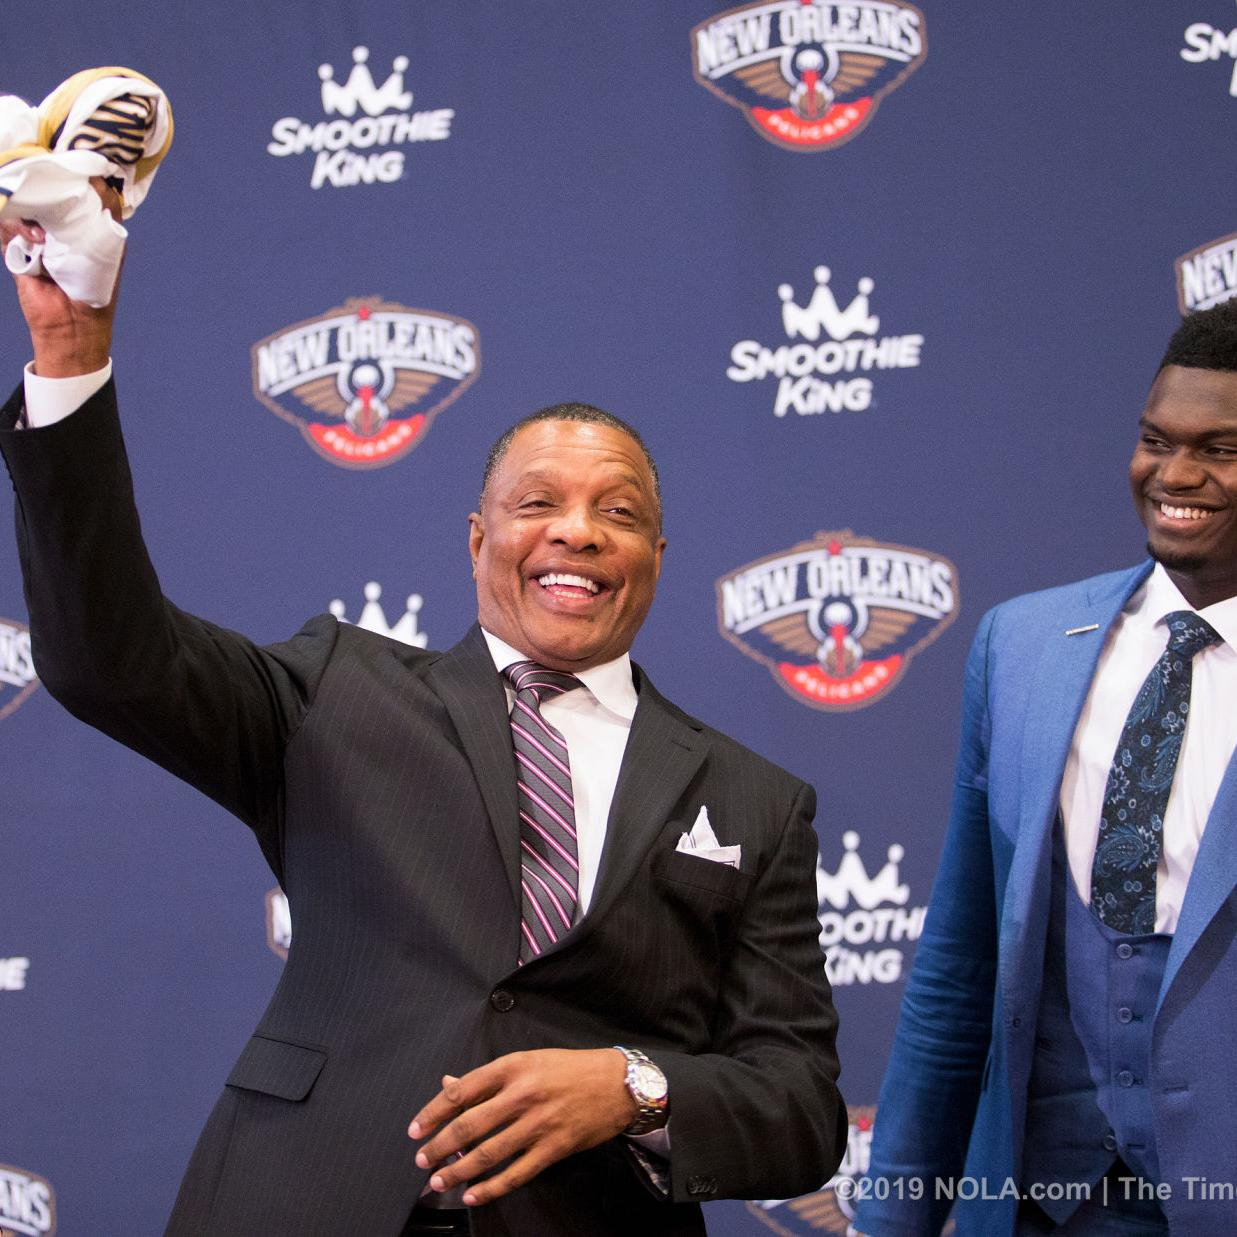 New Orleans Pelicans Flagship Radio Station Moves To Espn